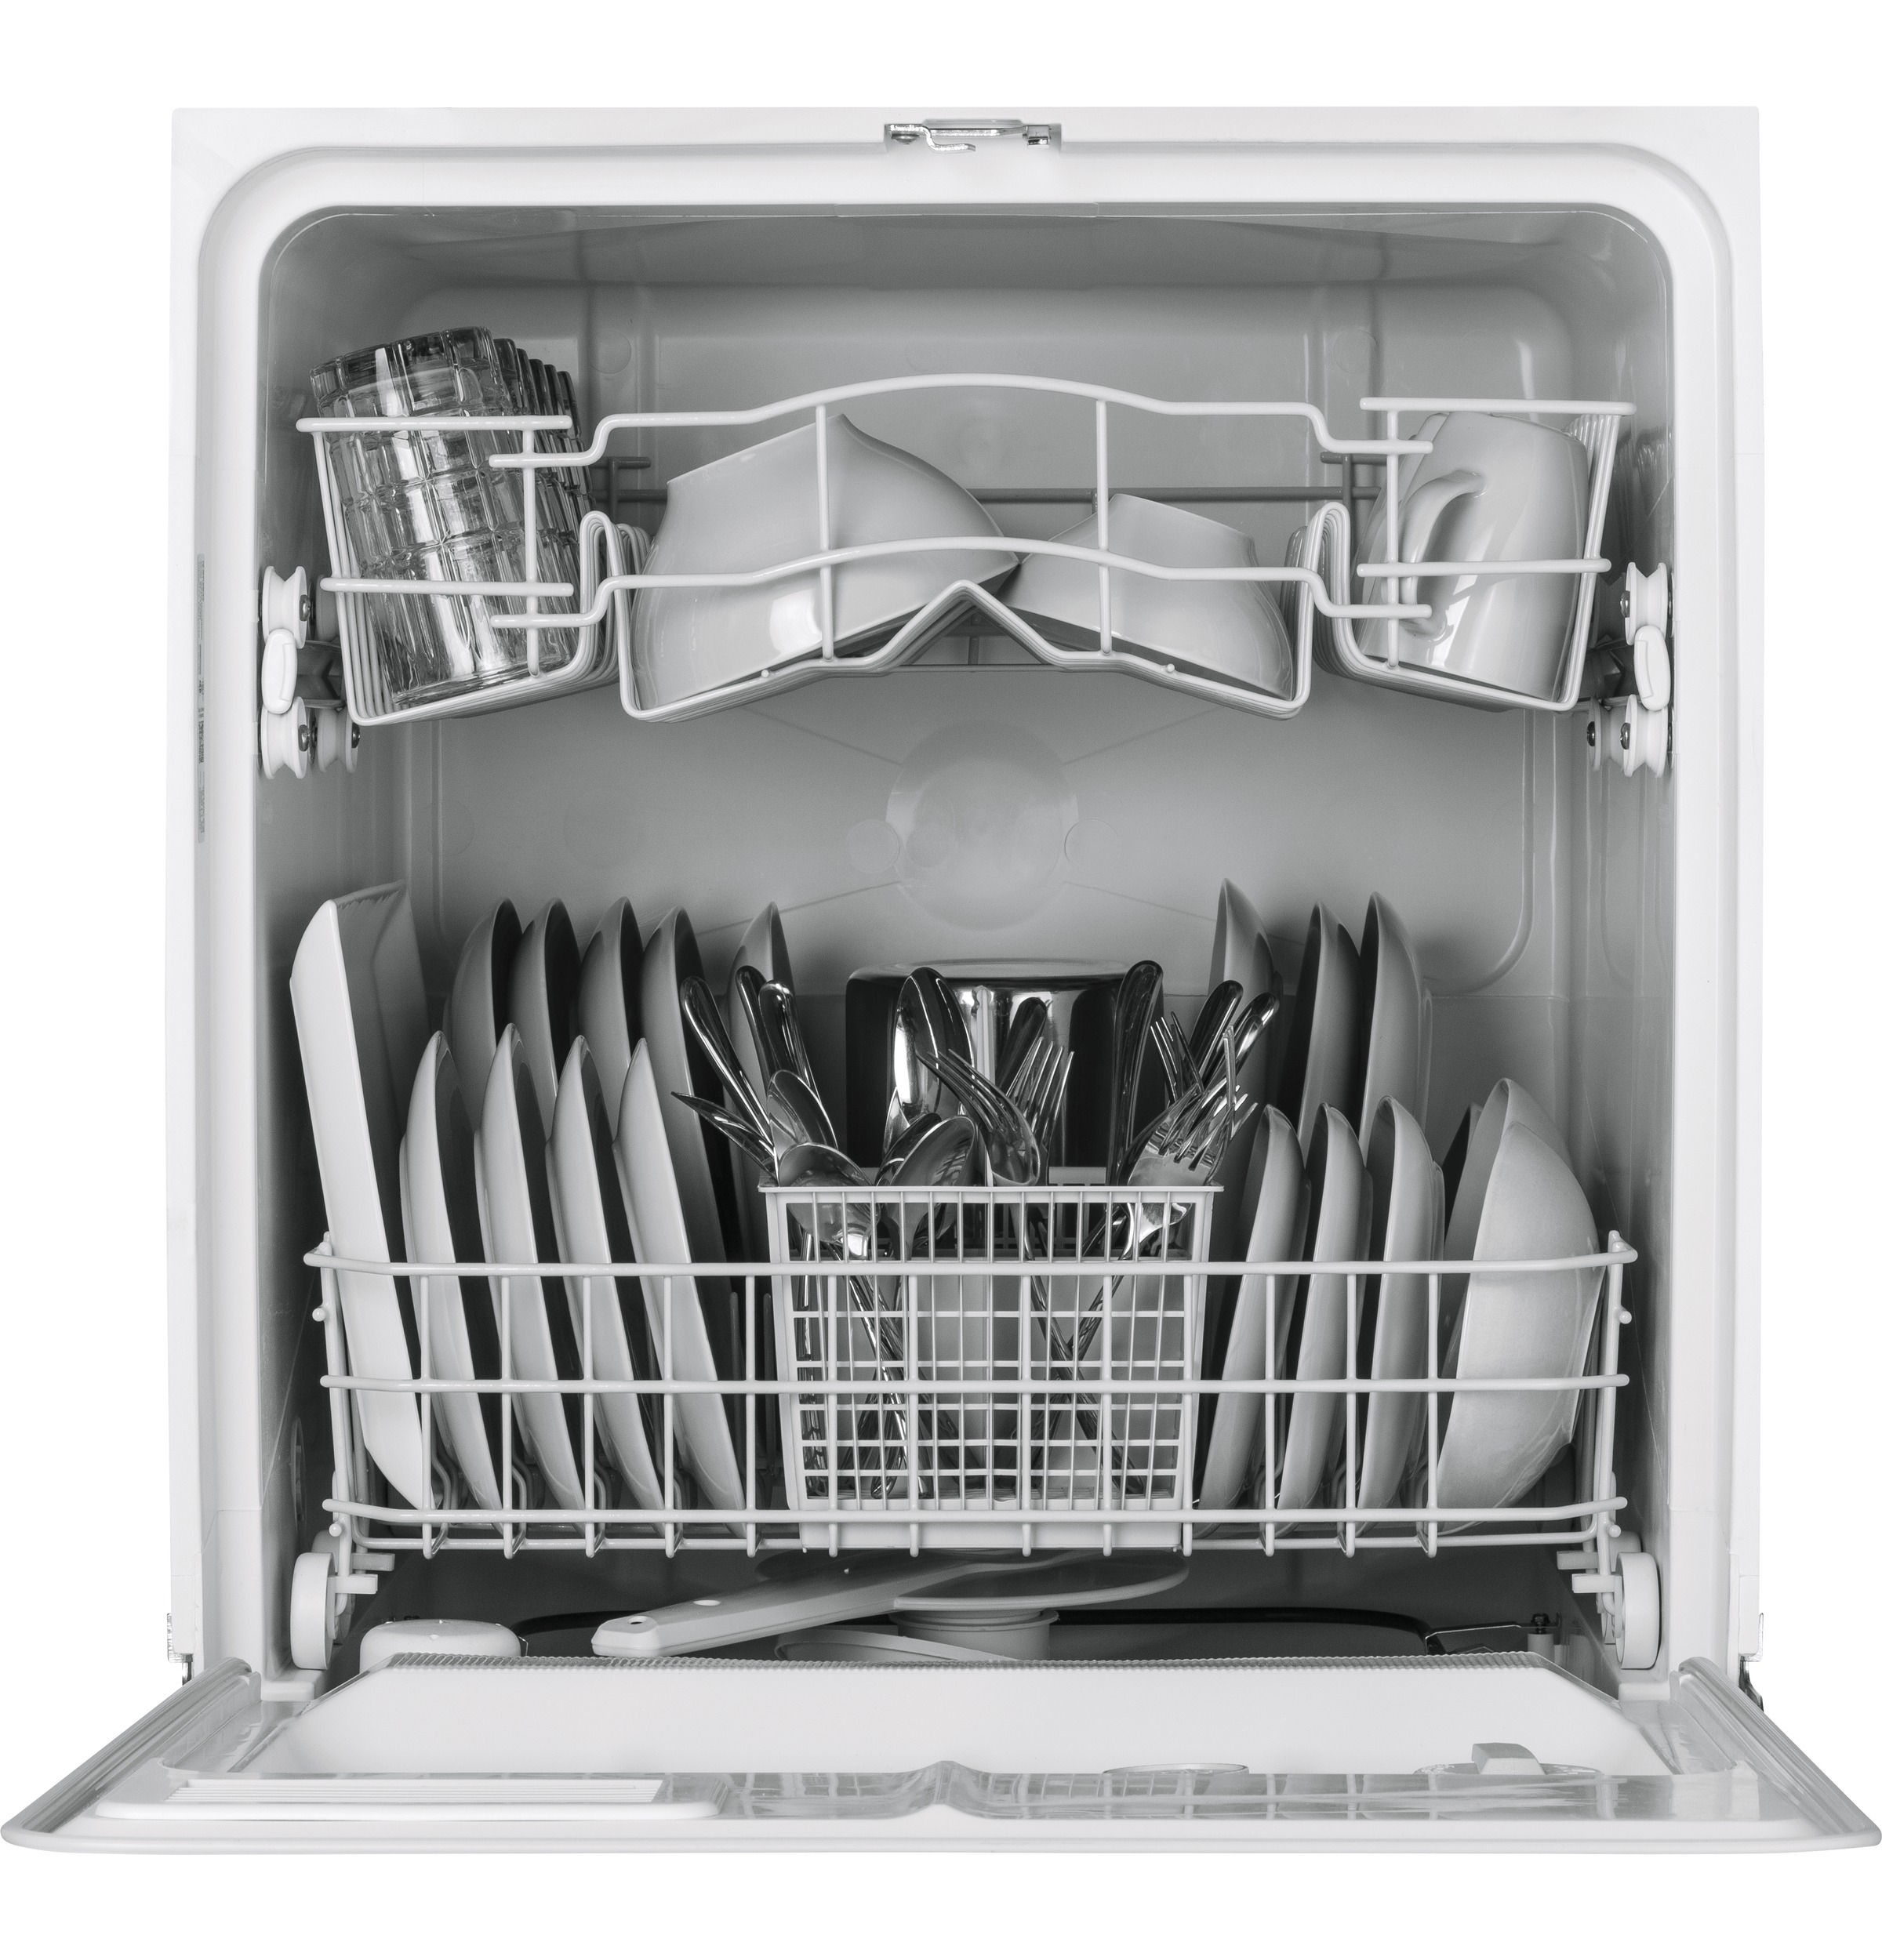 Model: GSD2100VBB | GE GE® Built-In Dishwasher